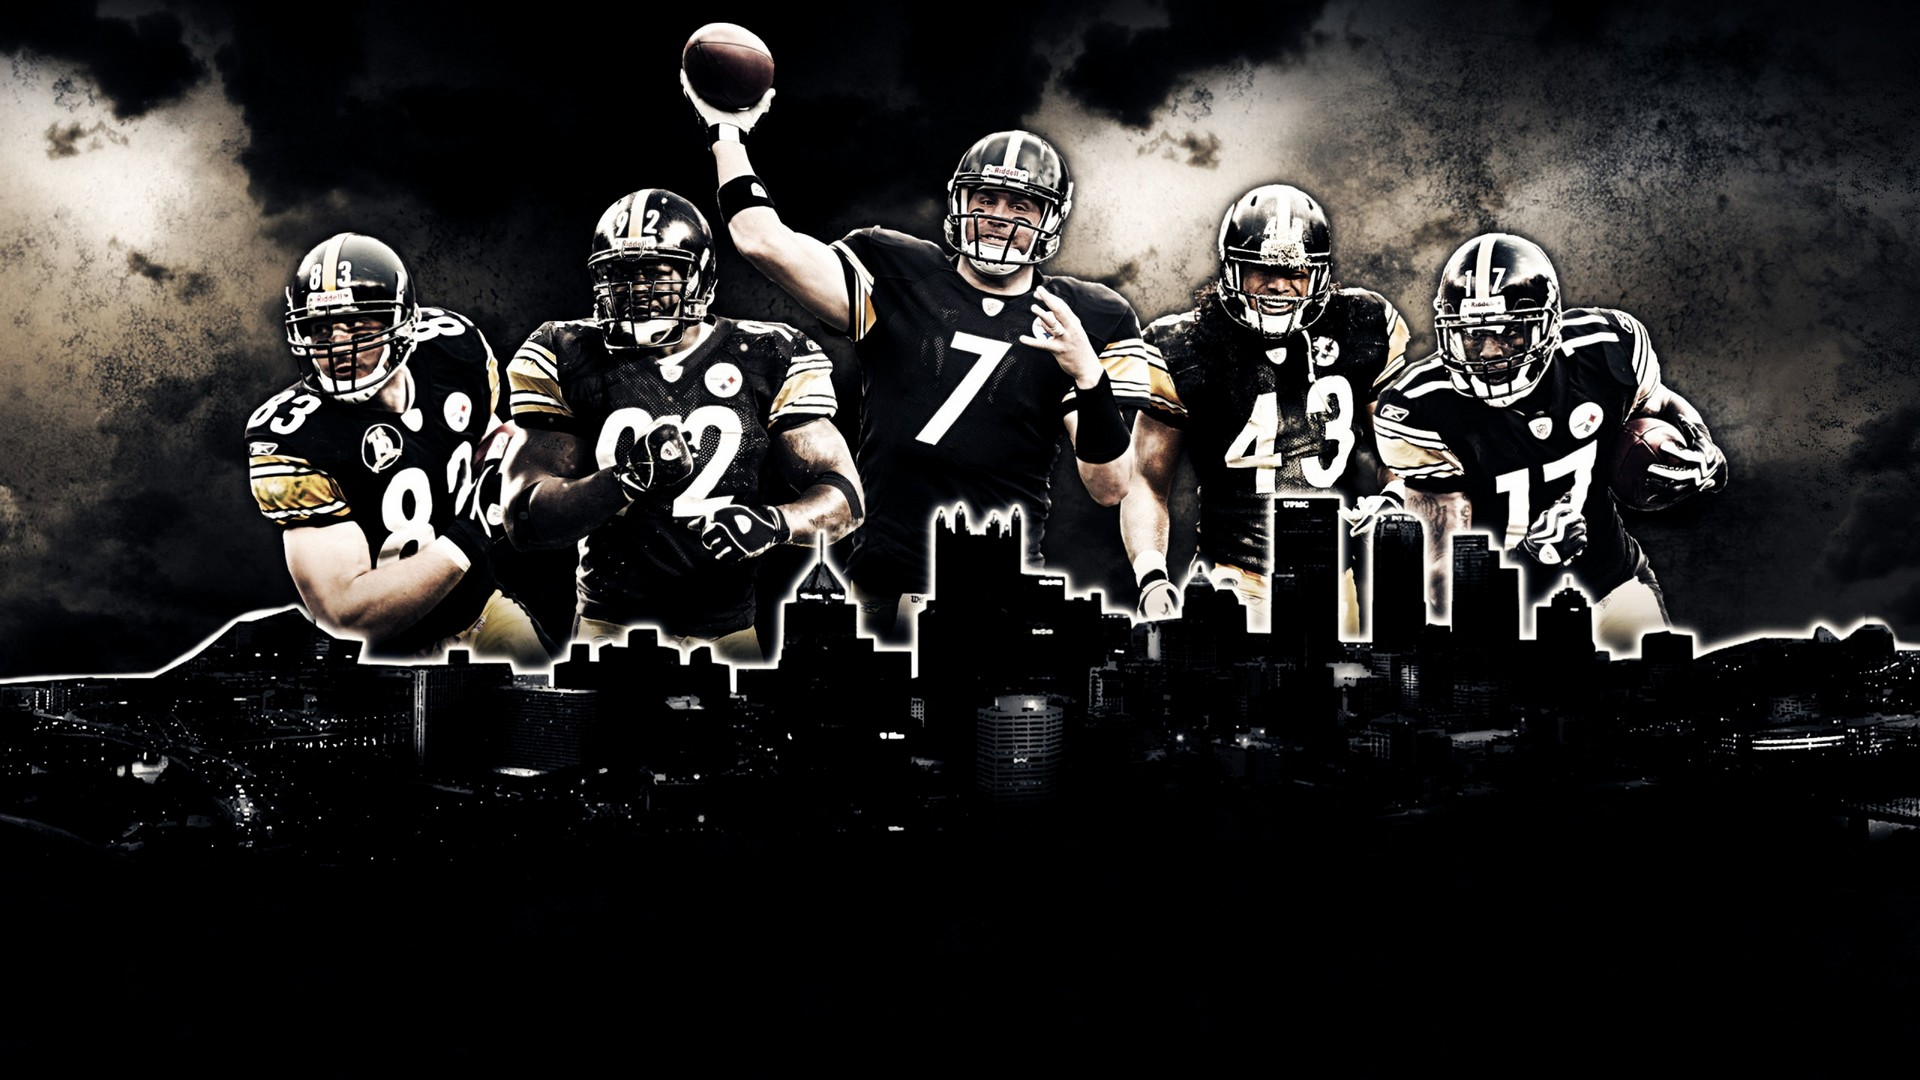 1920x1080 - Steelers Desktop 51